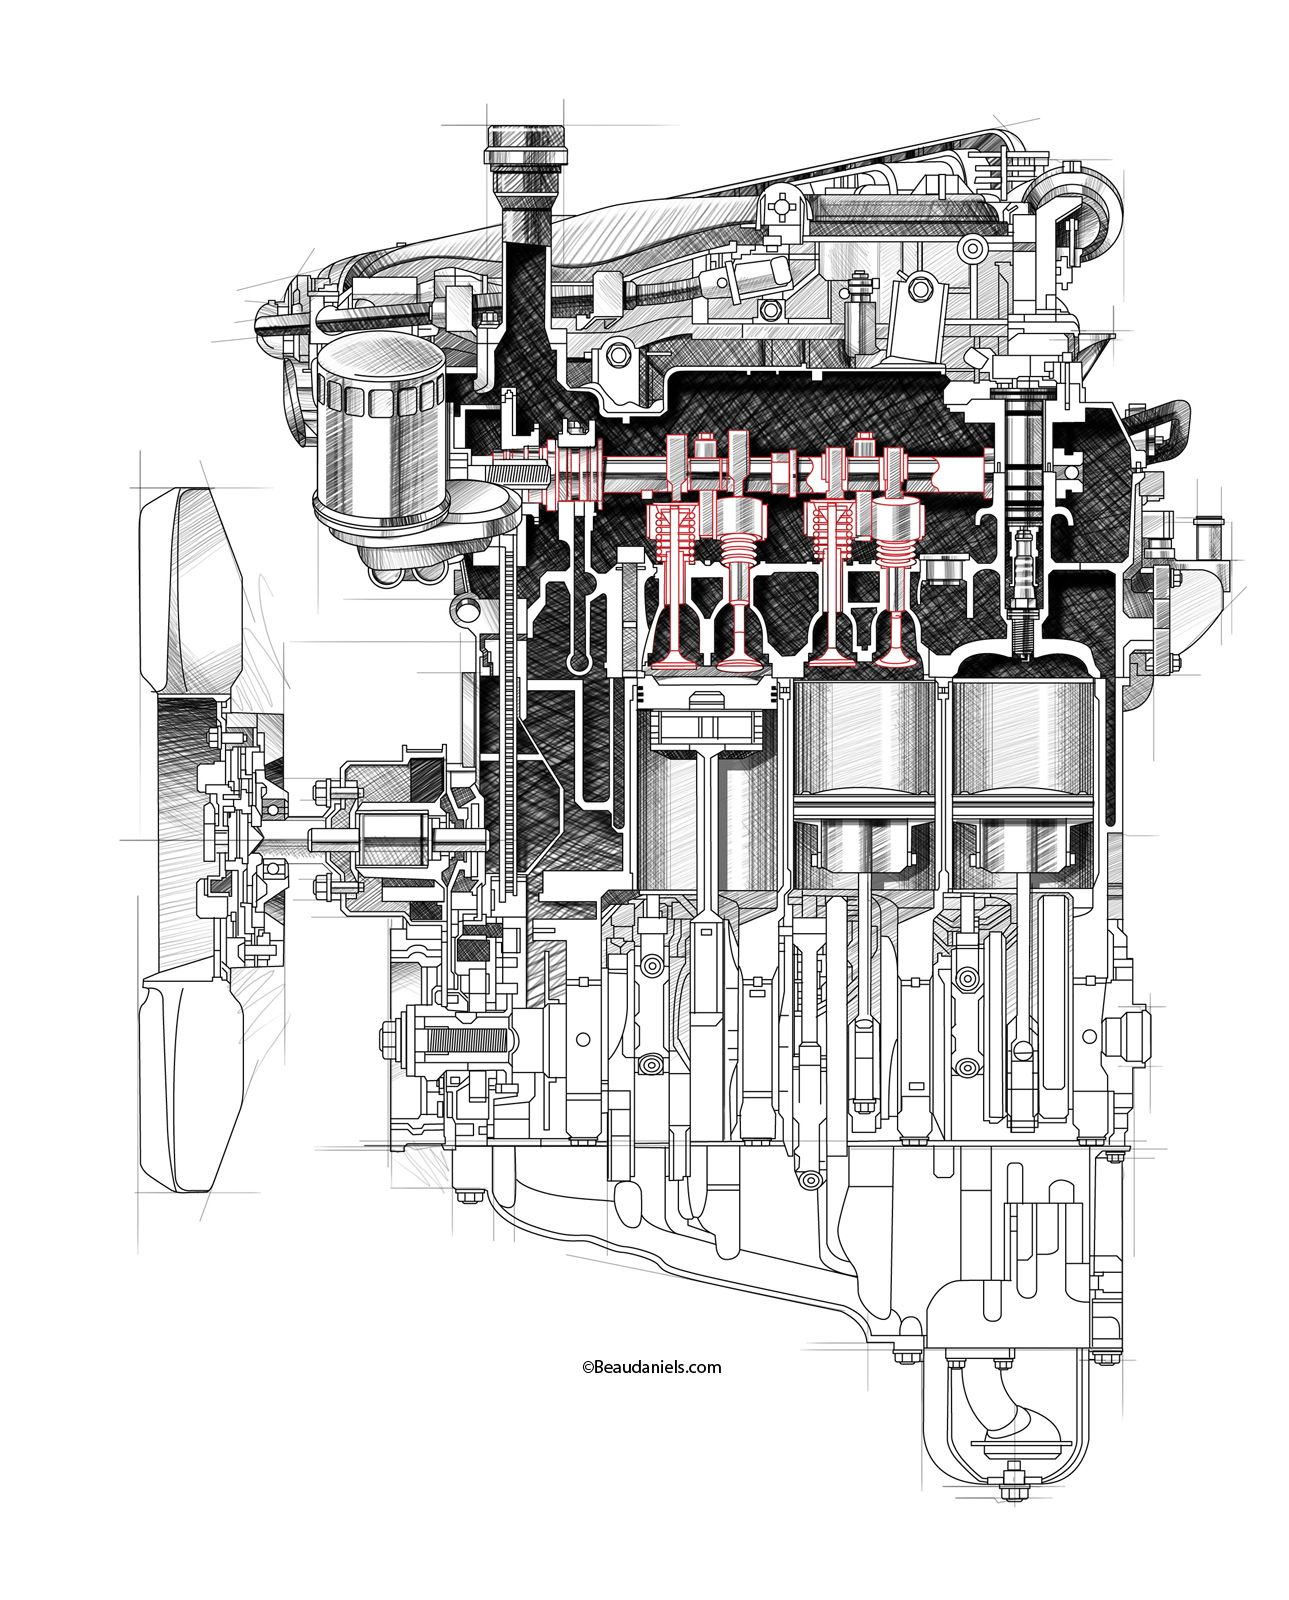 Cutaway And Ghosted Car Engines Produced For Multiple